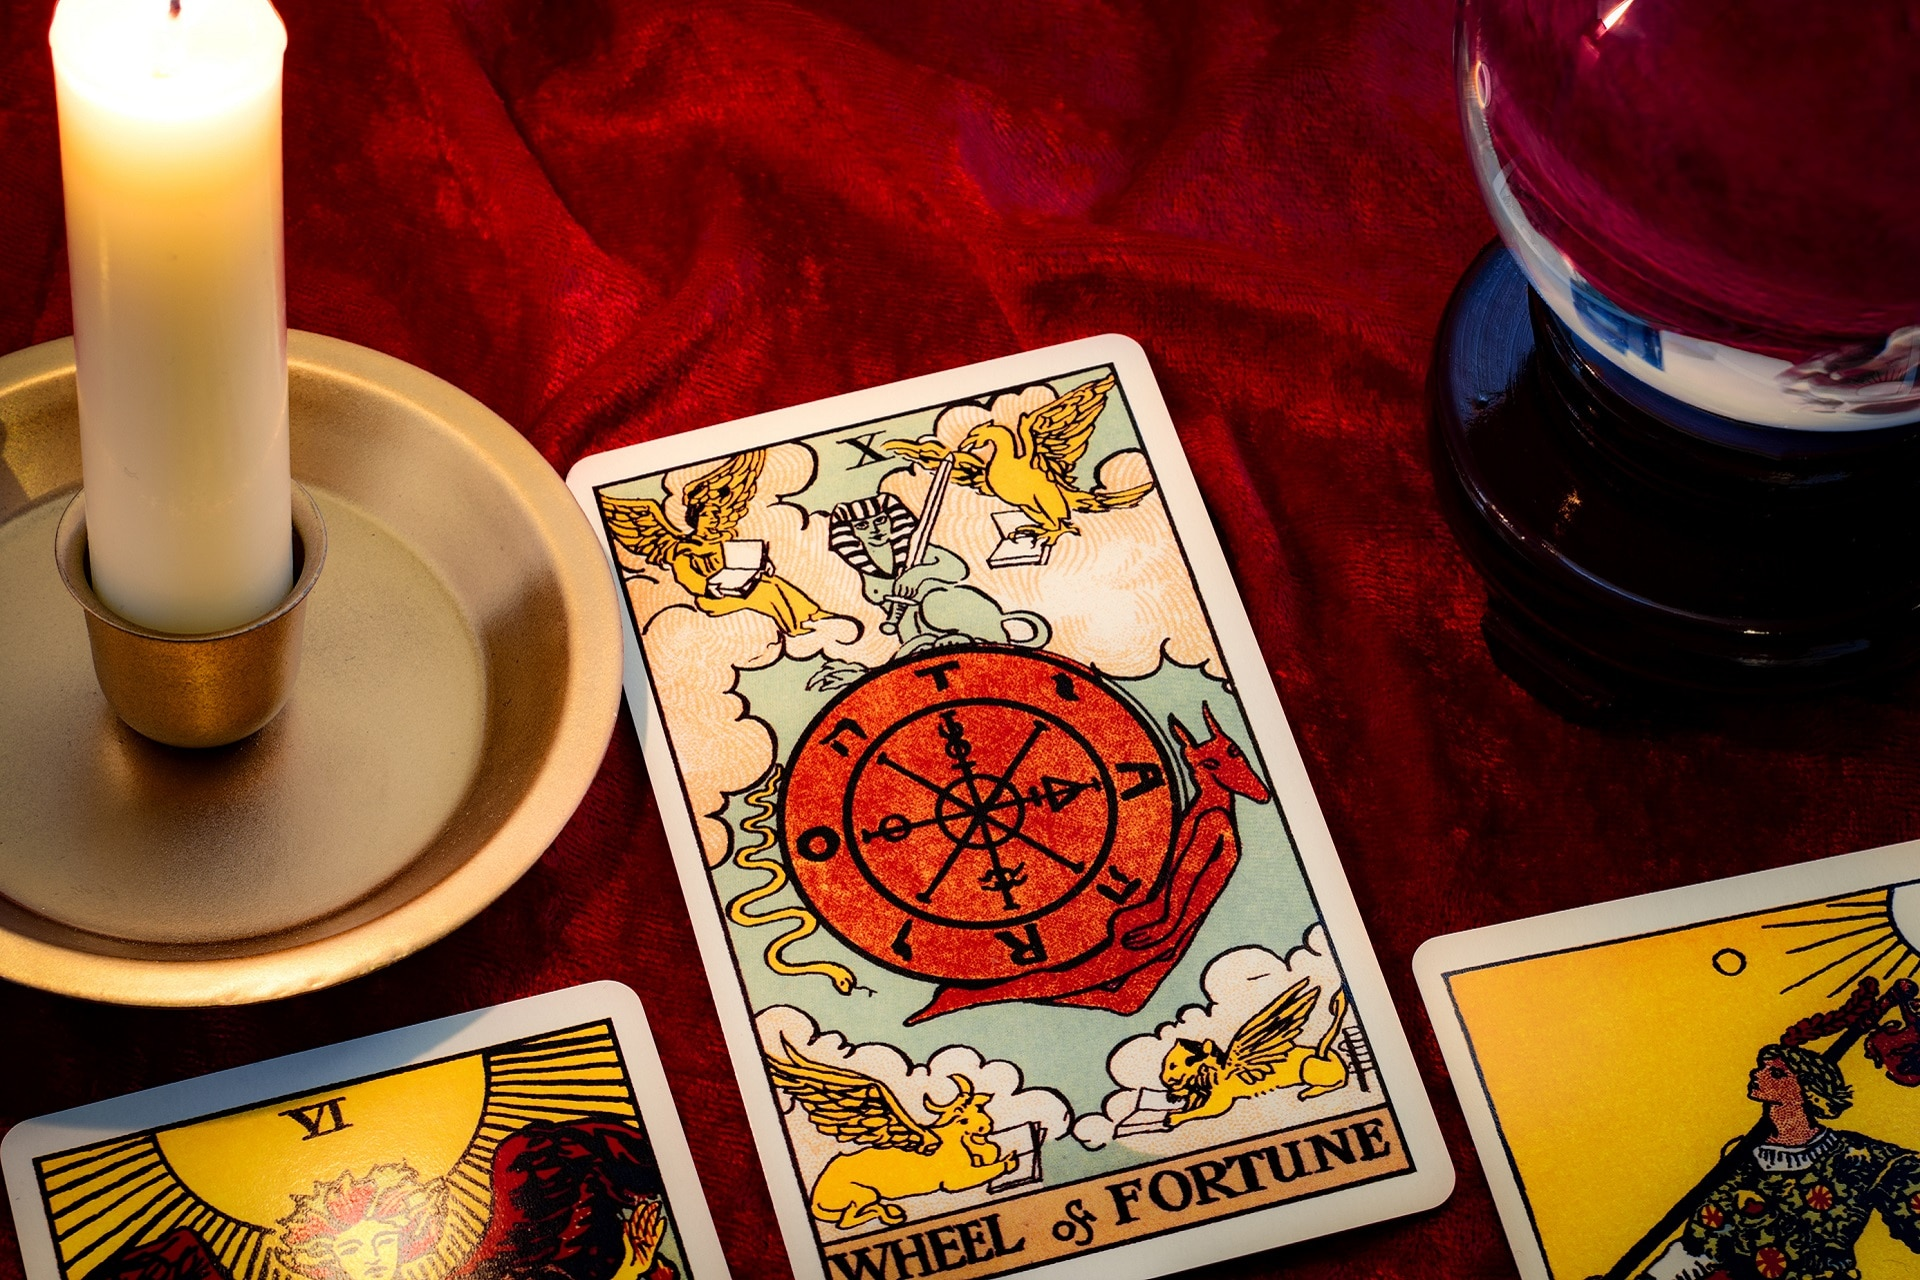 Wheel of fortune card and crystal ball under candle light. Cartomancy is fortune telling using cards, while scrying and clairvoyance is future reading using orbs, both are branches of astrology